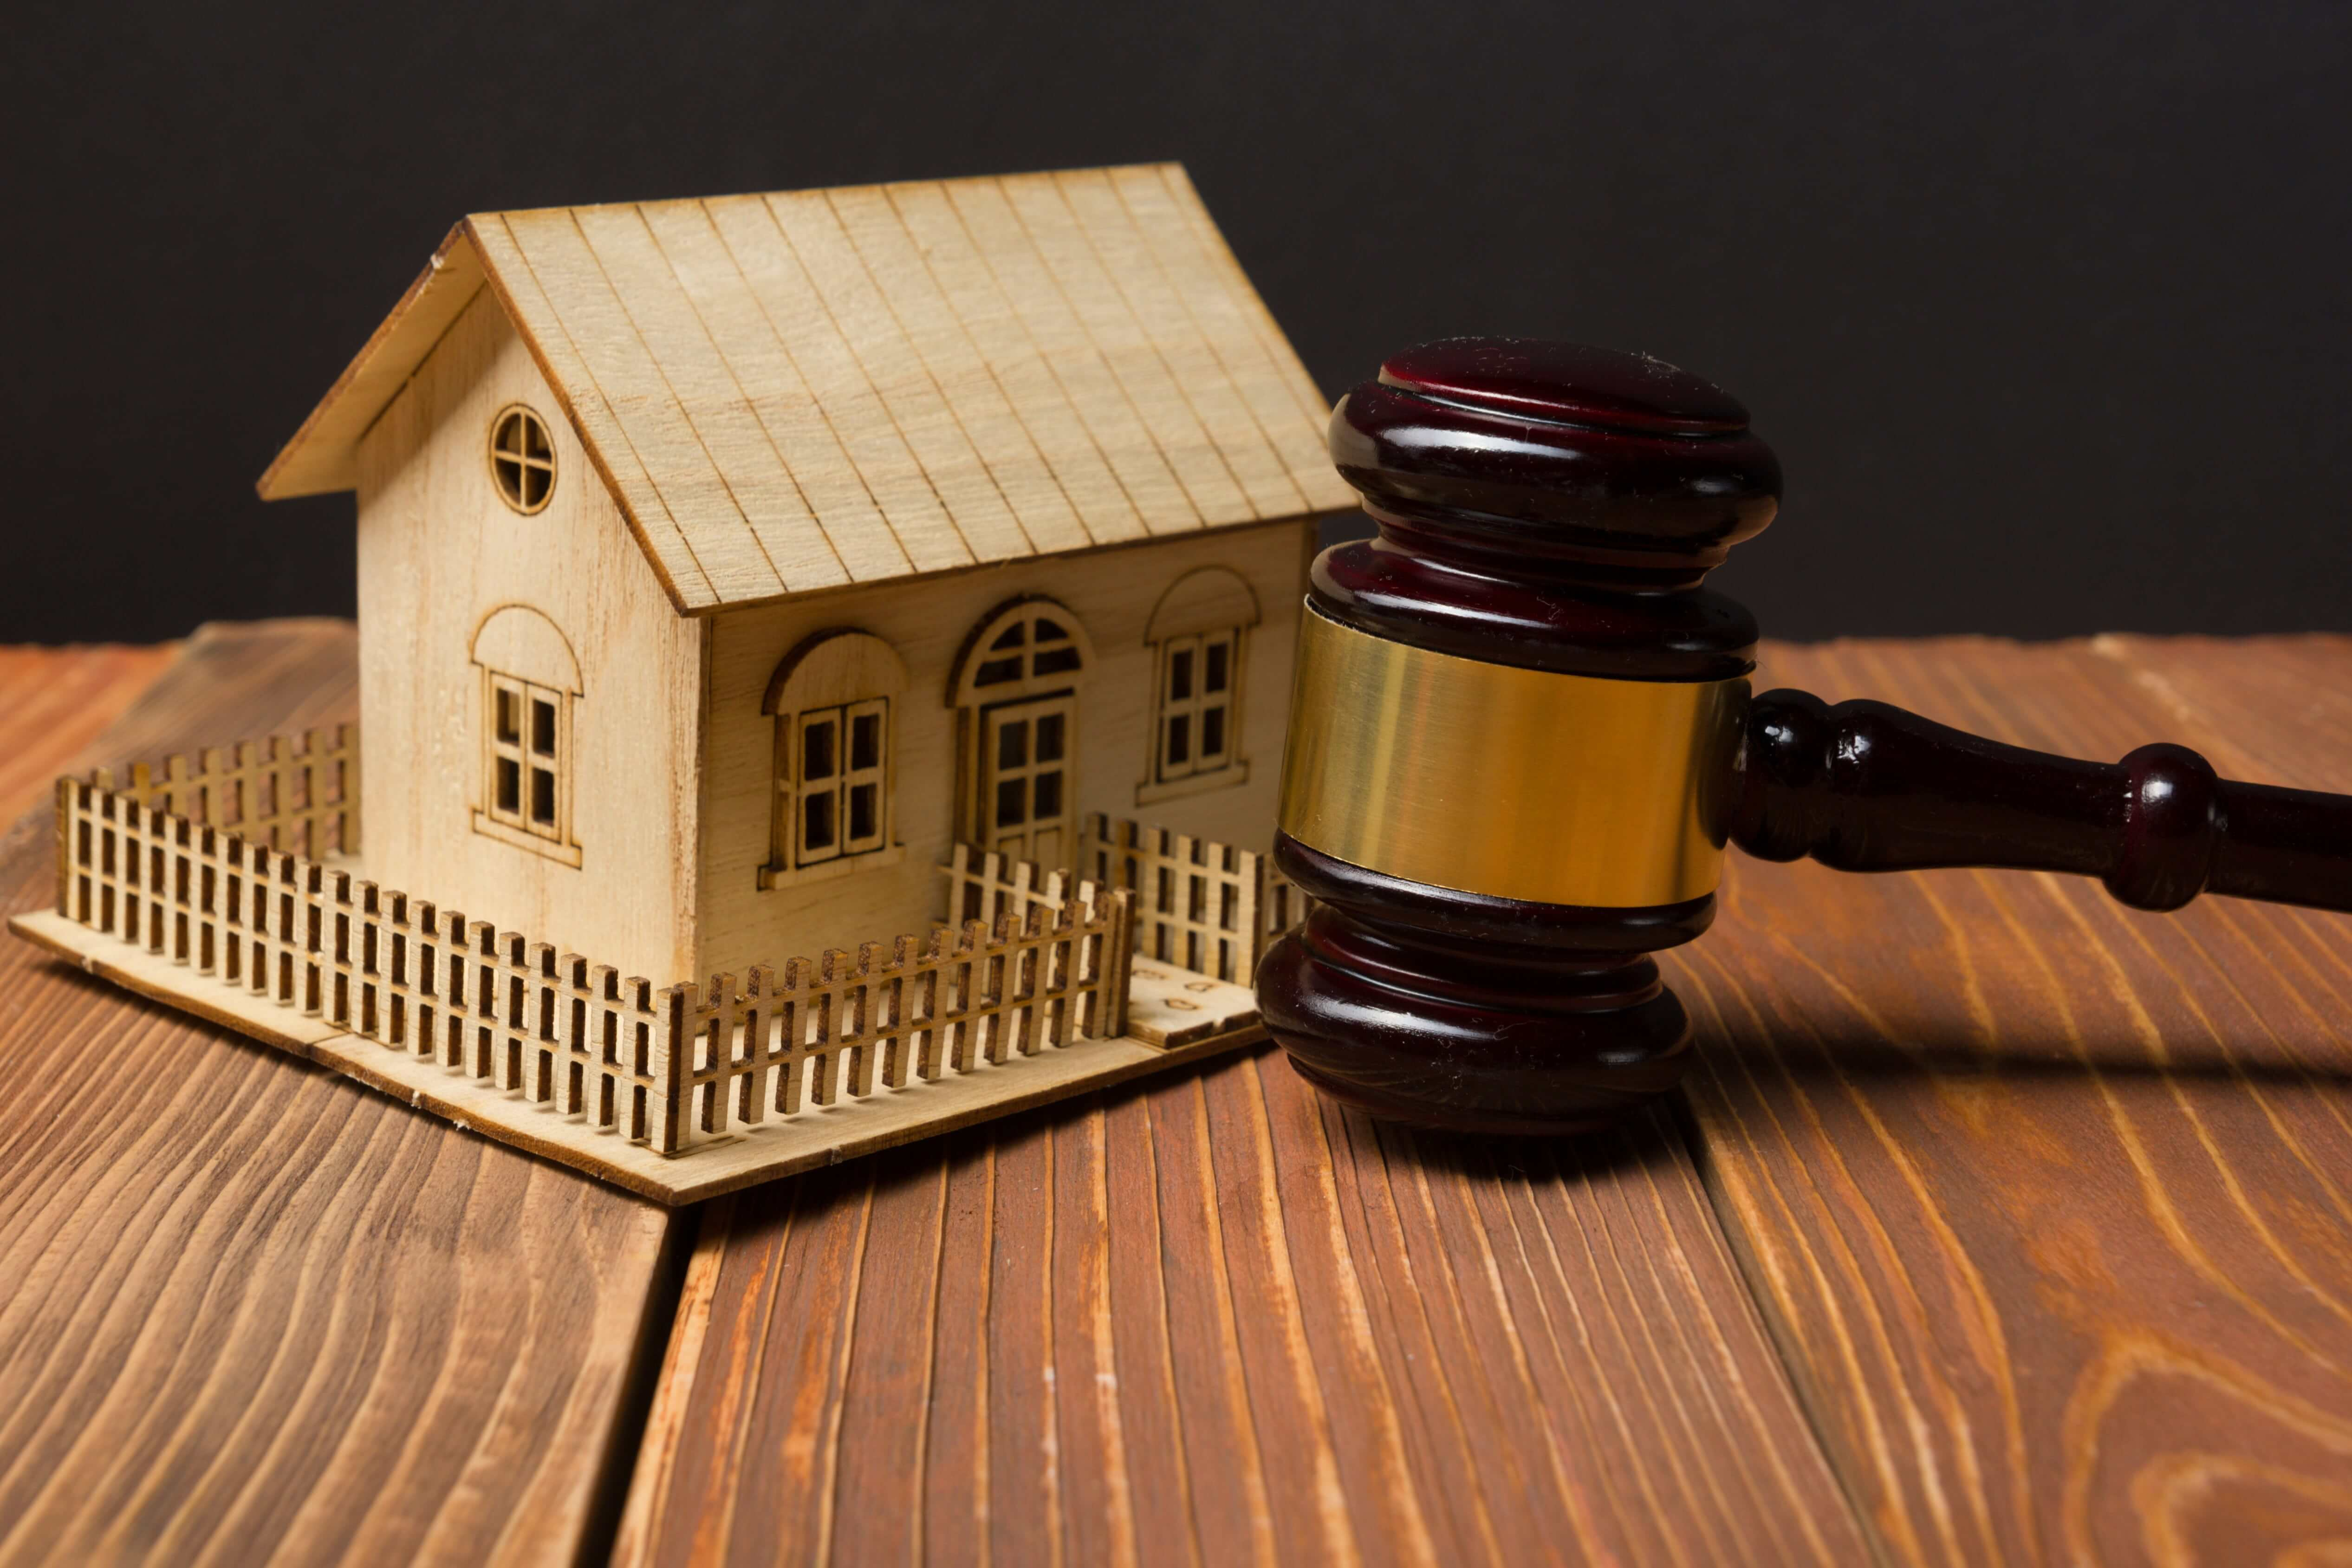 should i auction my house to avoid foreclosure?